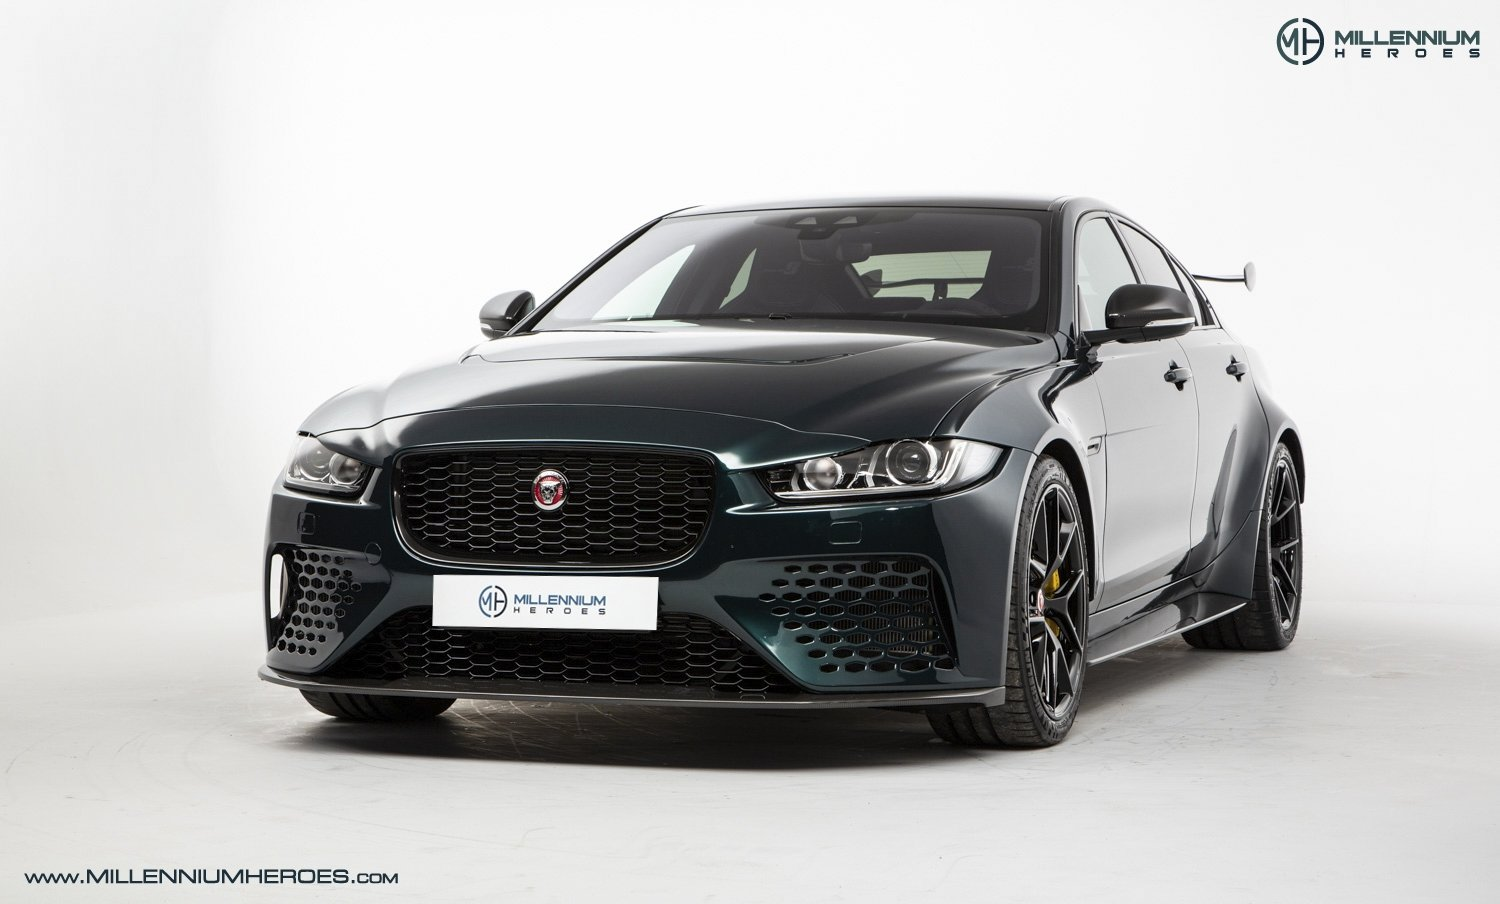 2019 JAGUAR XE SV PROJECT 8 // 1 OF 300 // 1K MILES // 1 OWNER  For Sale (picture 1 of 24)